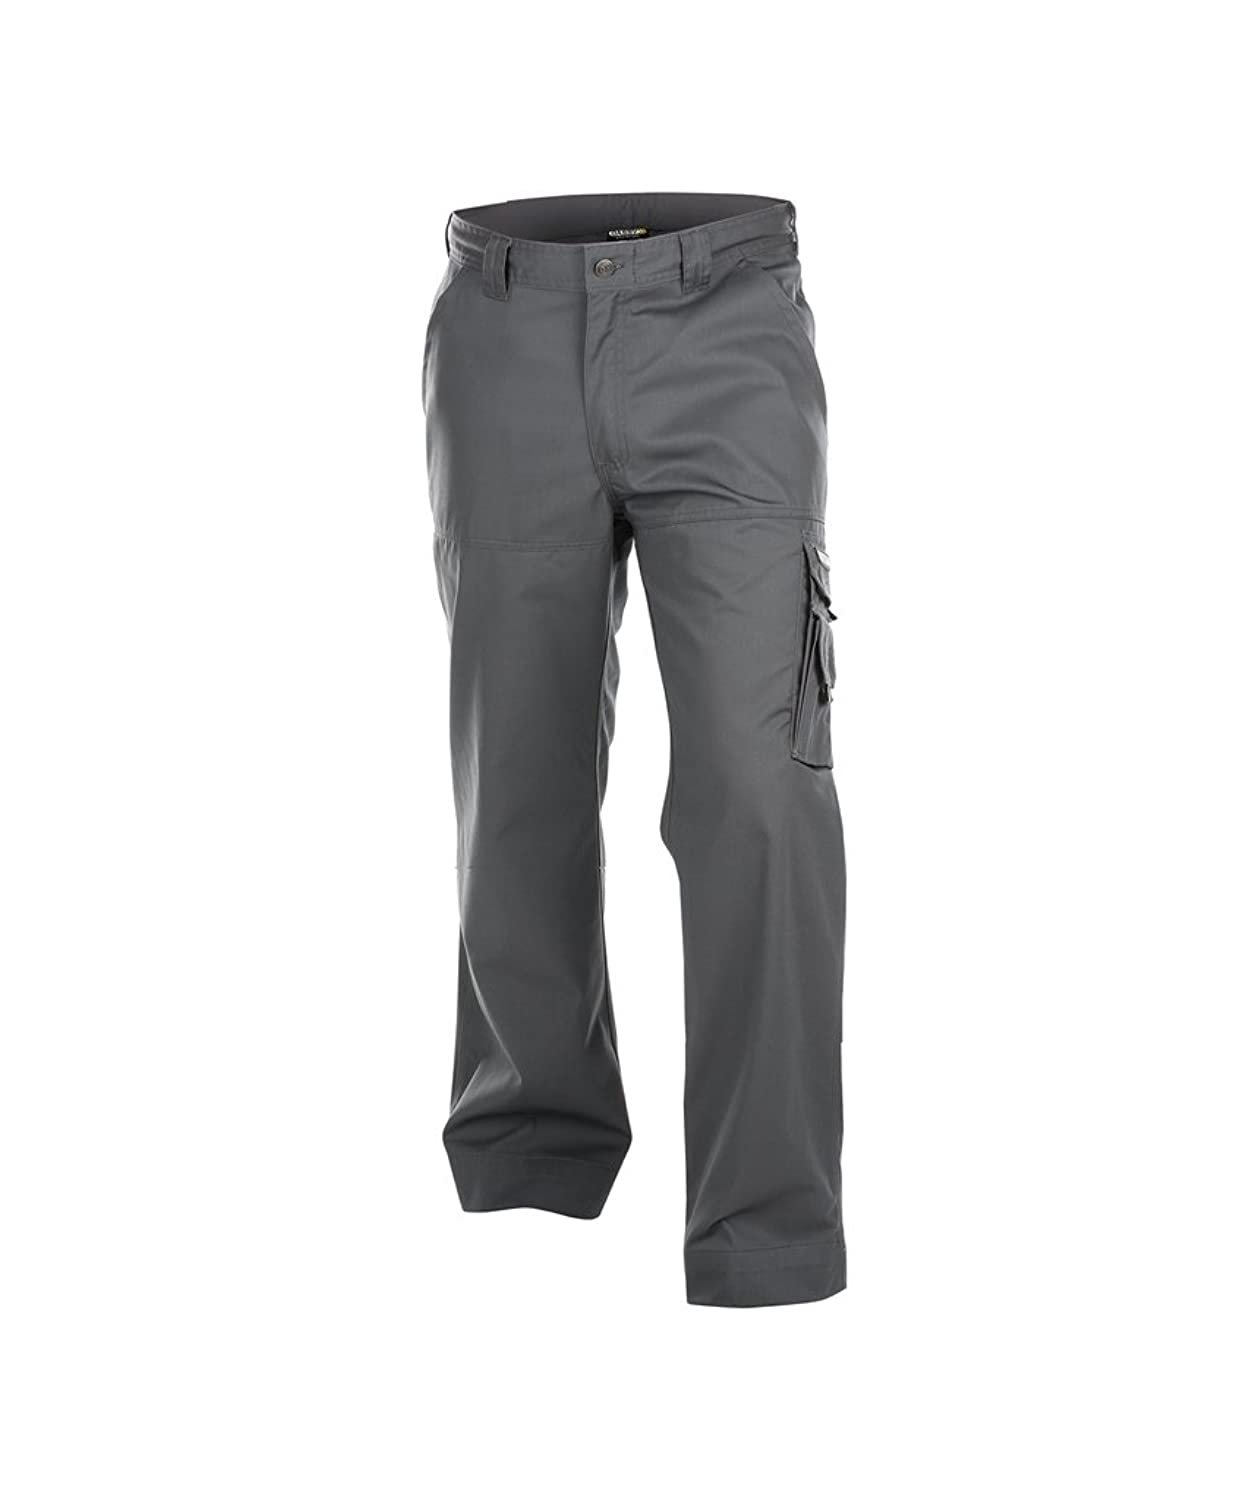 Dassy Liverpool 100% Cotton Cargo Work Trousers - Triple Needle Stitched - Grey